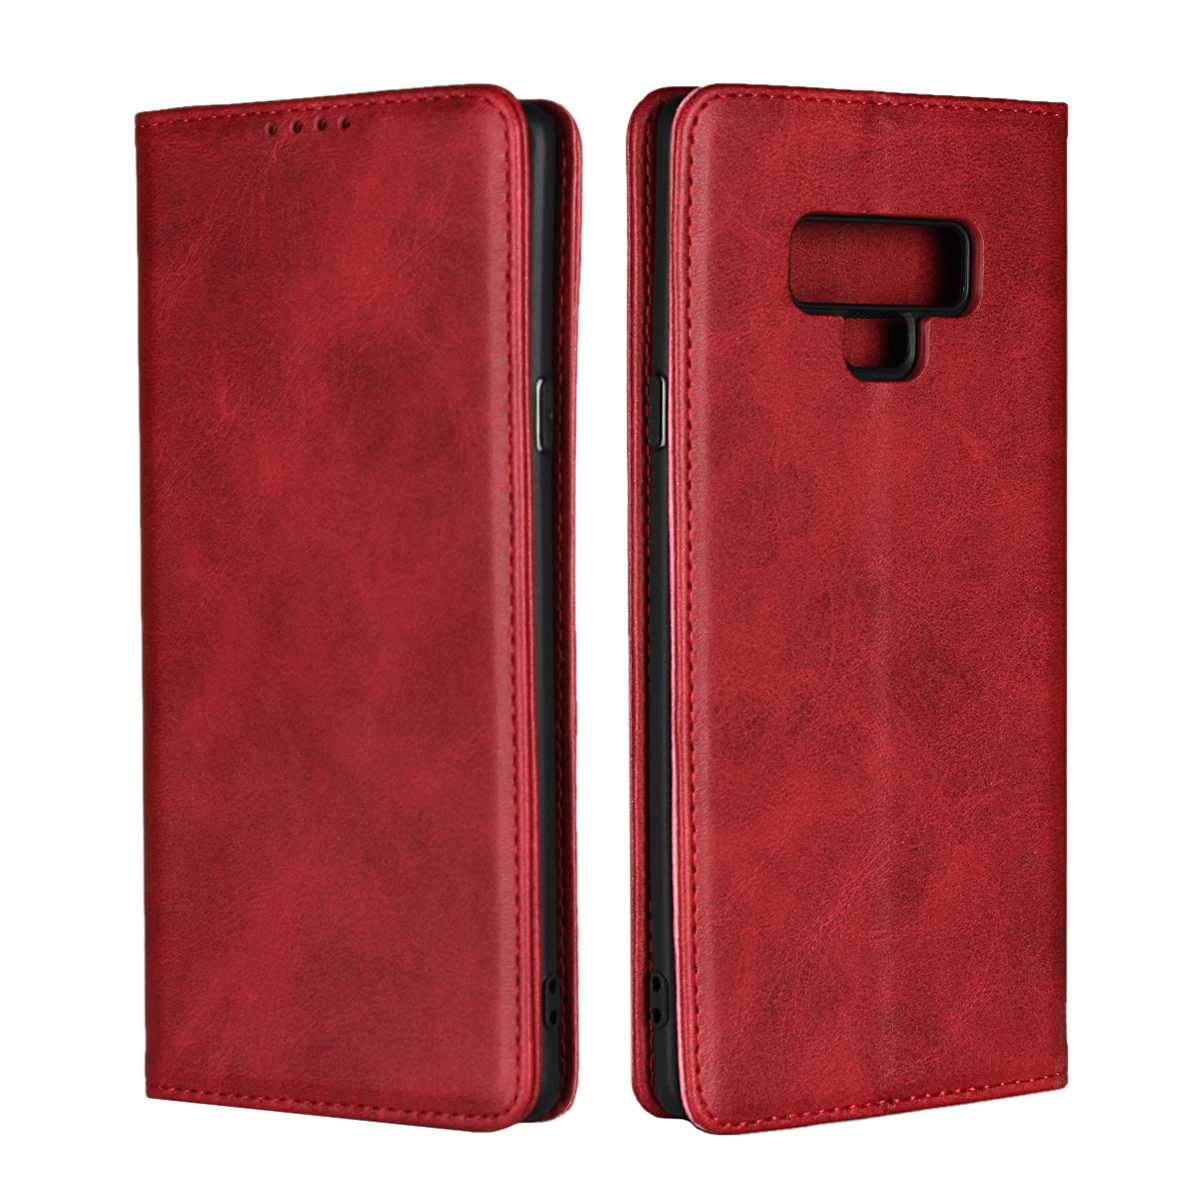 DENDICO Case for Samsung Galaxy S8, Classic Leather Wallet Case Flip Notebook Style Cover with Magnetic Closure, Card Holders, Stand Feature - Red FFDDC22S8-0404